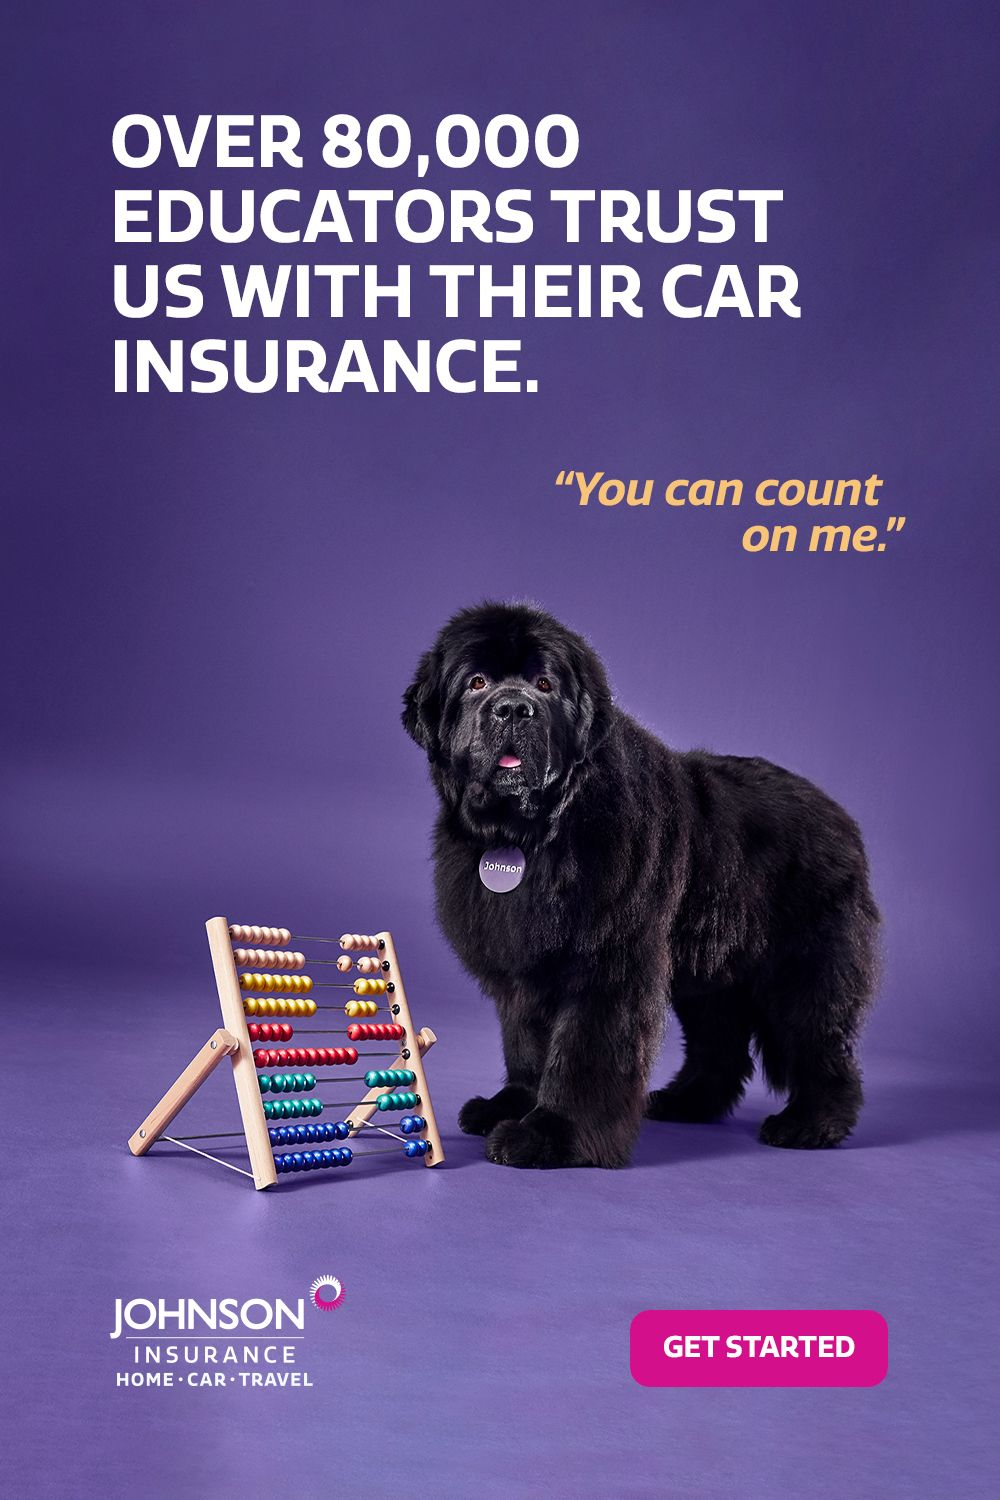 Choosing the right car insurance is as important as